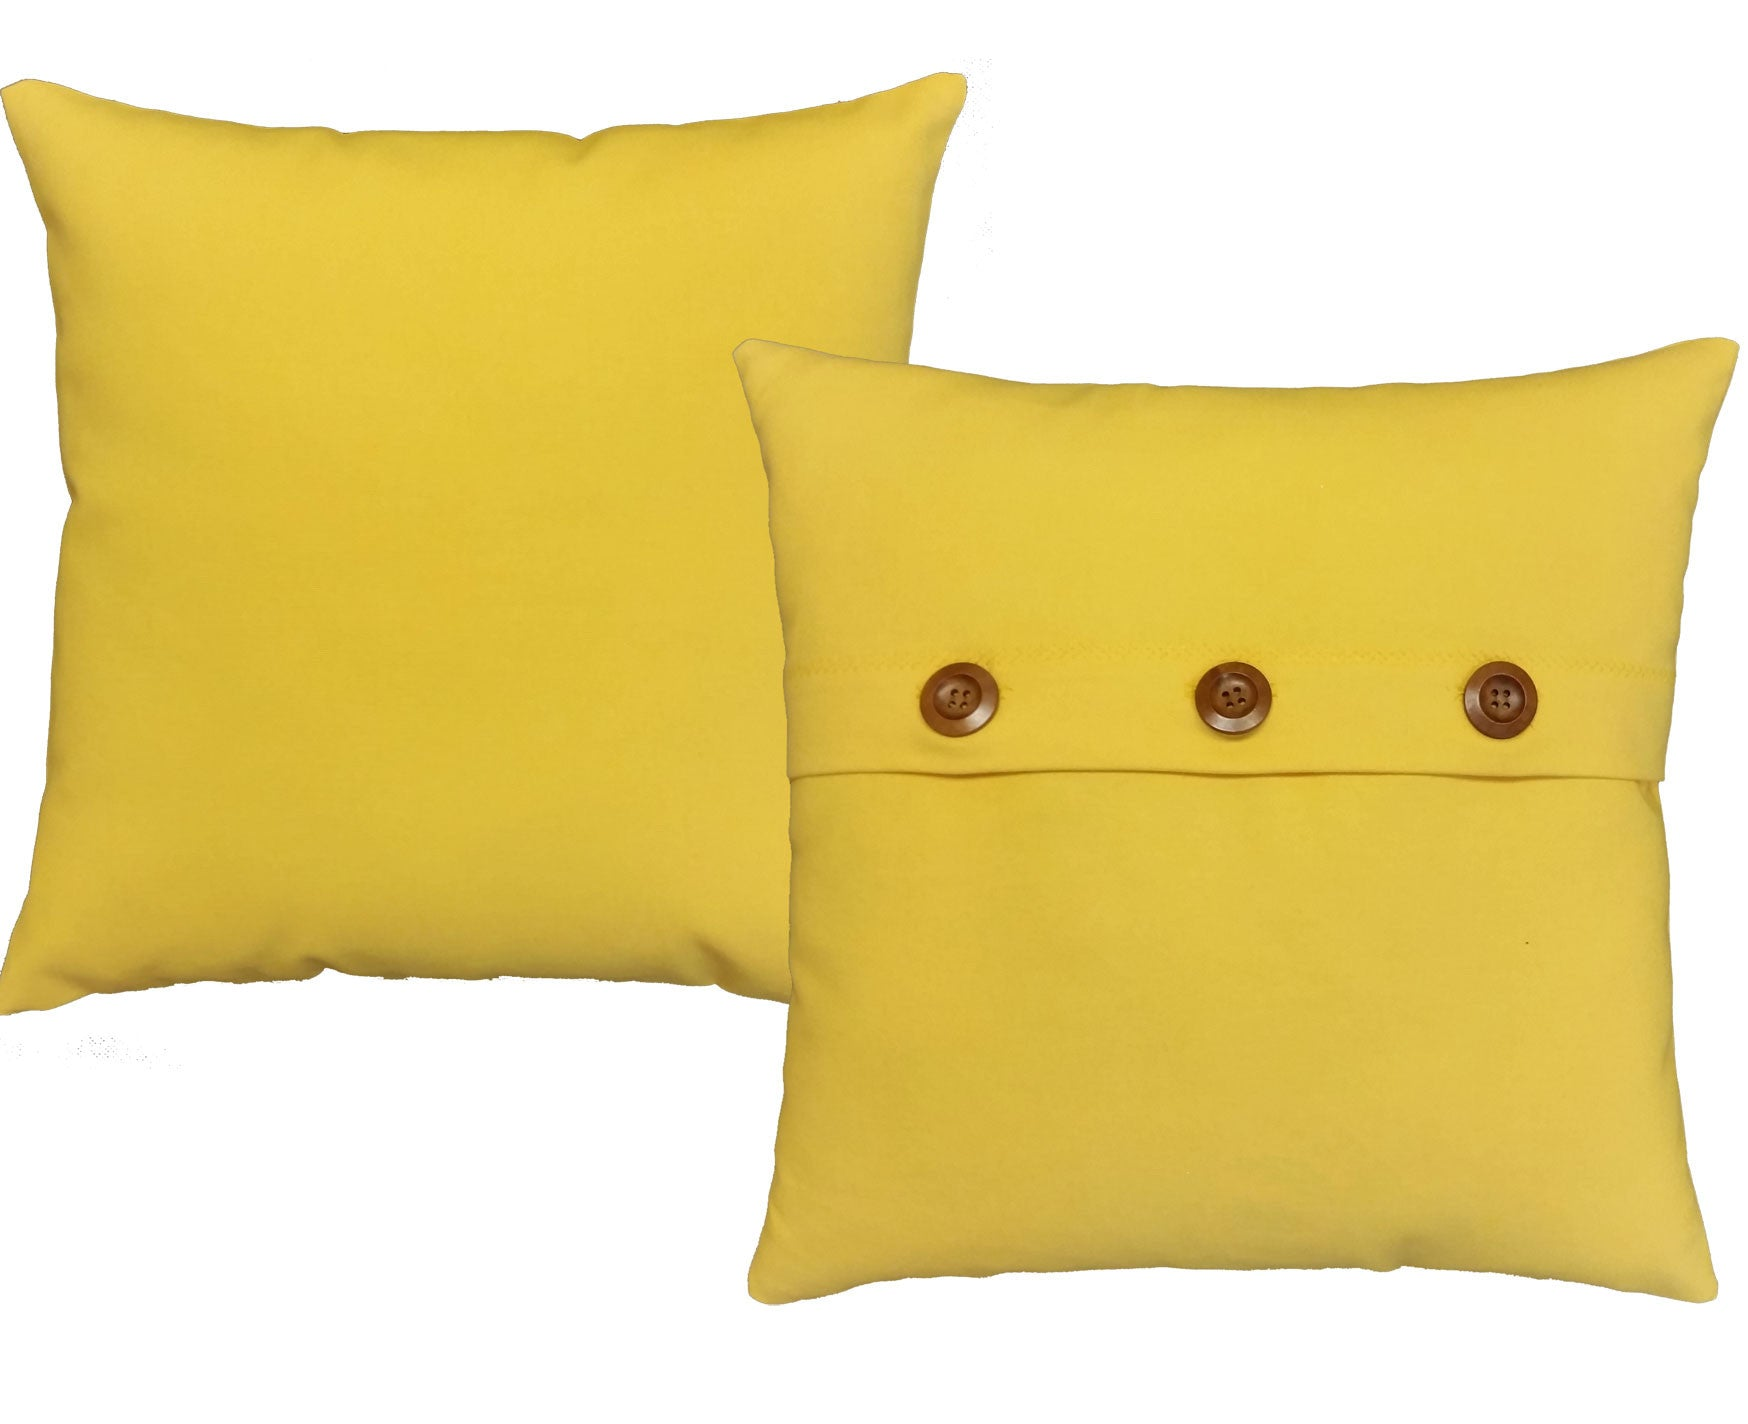 Solid Color Pillows - Set of 2 Modern Decorative Pillows f24a47faa4c6